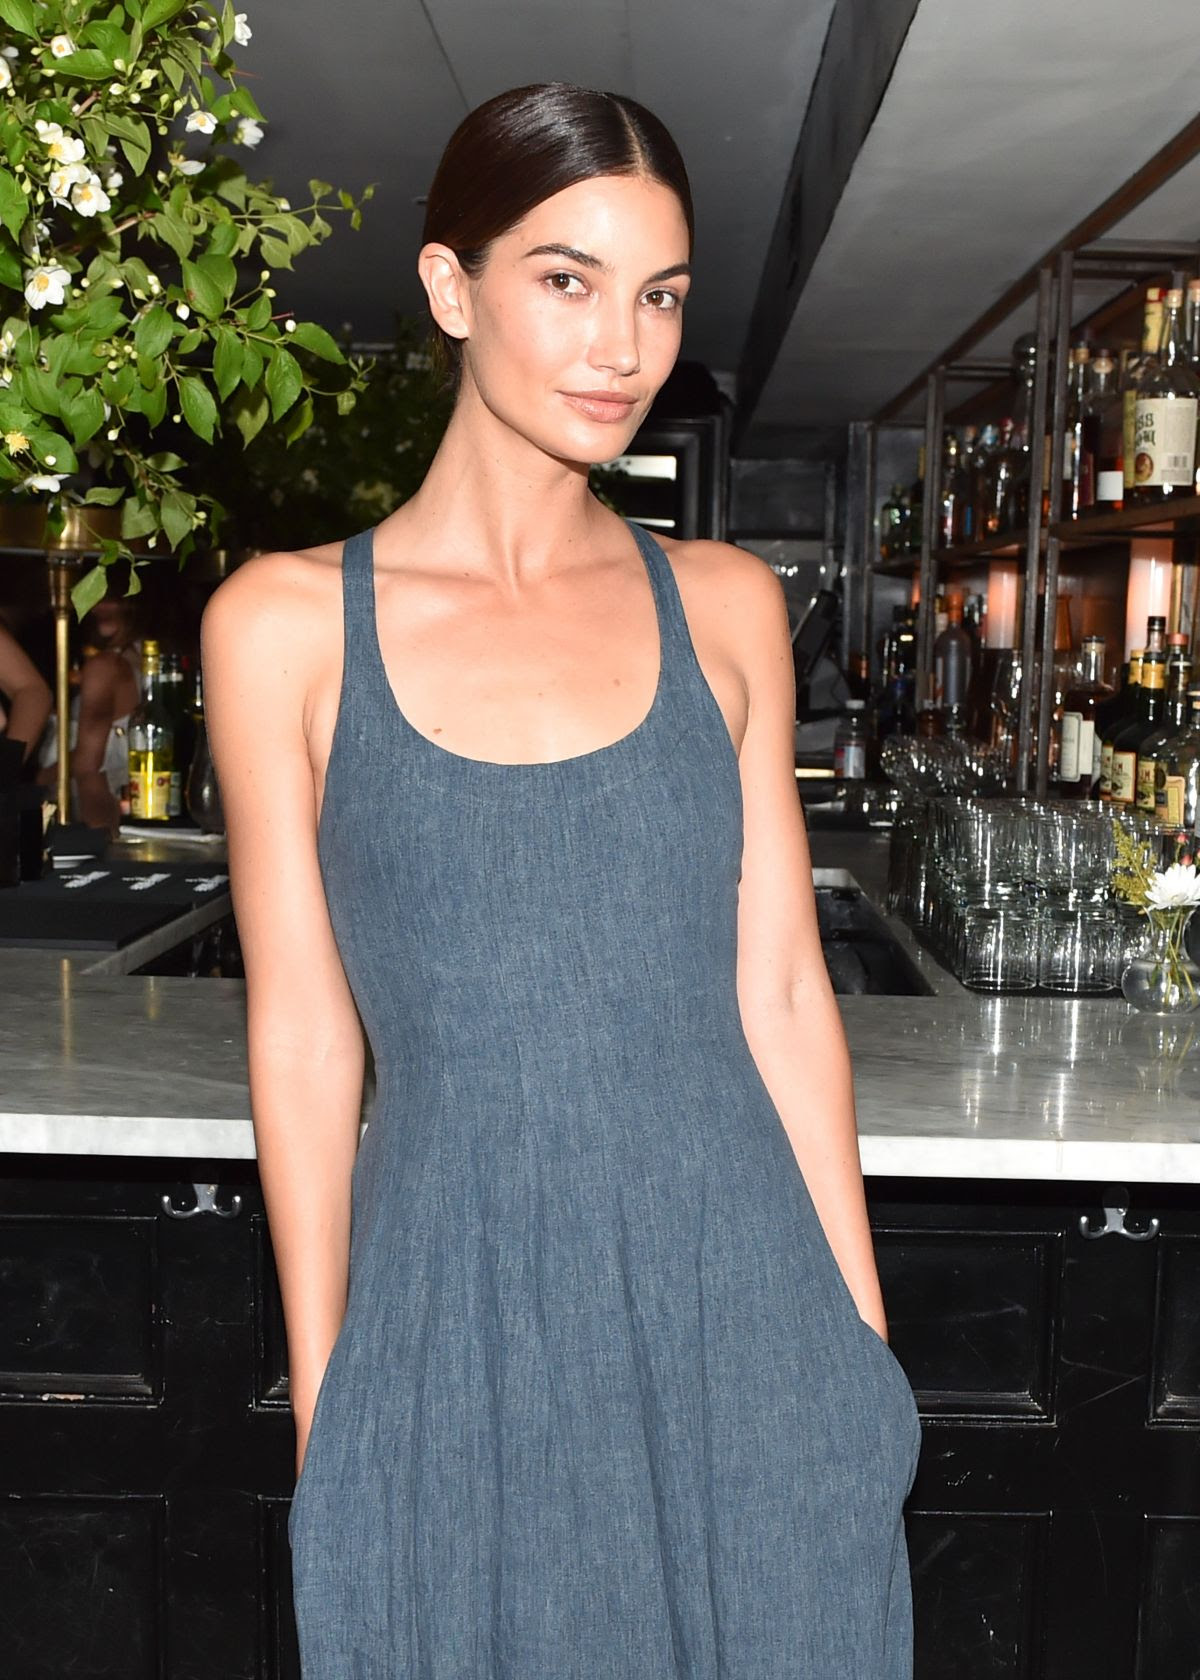 LILY ALDRIDGE at Refinery29, cfda & Neiman Marcus Celebrate Tabitha Simmons in New York